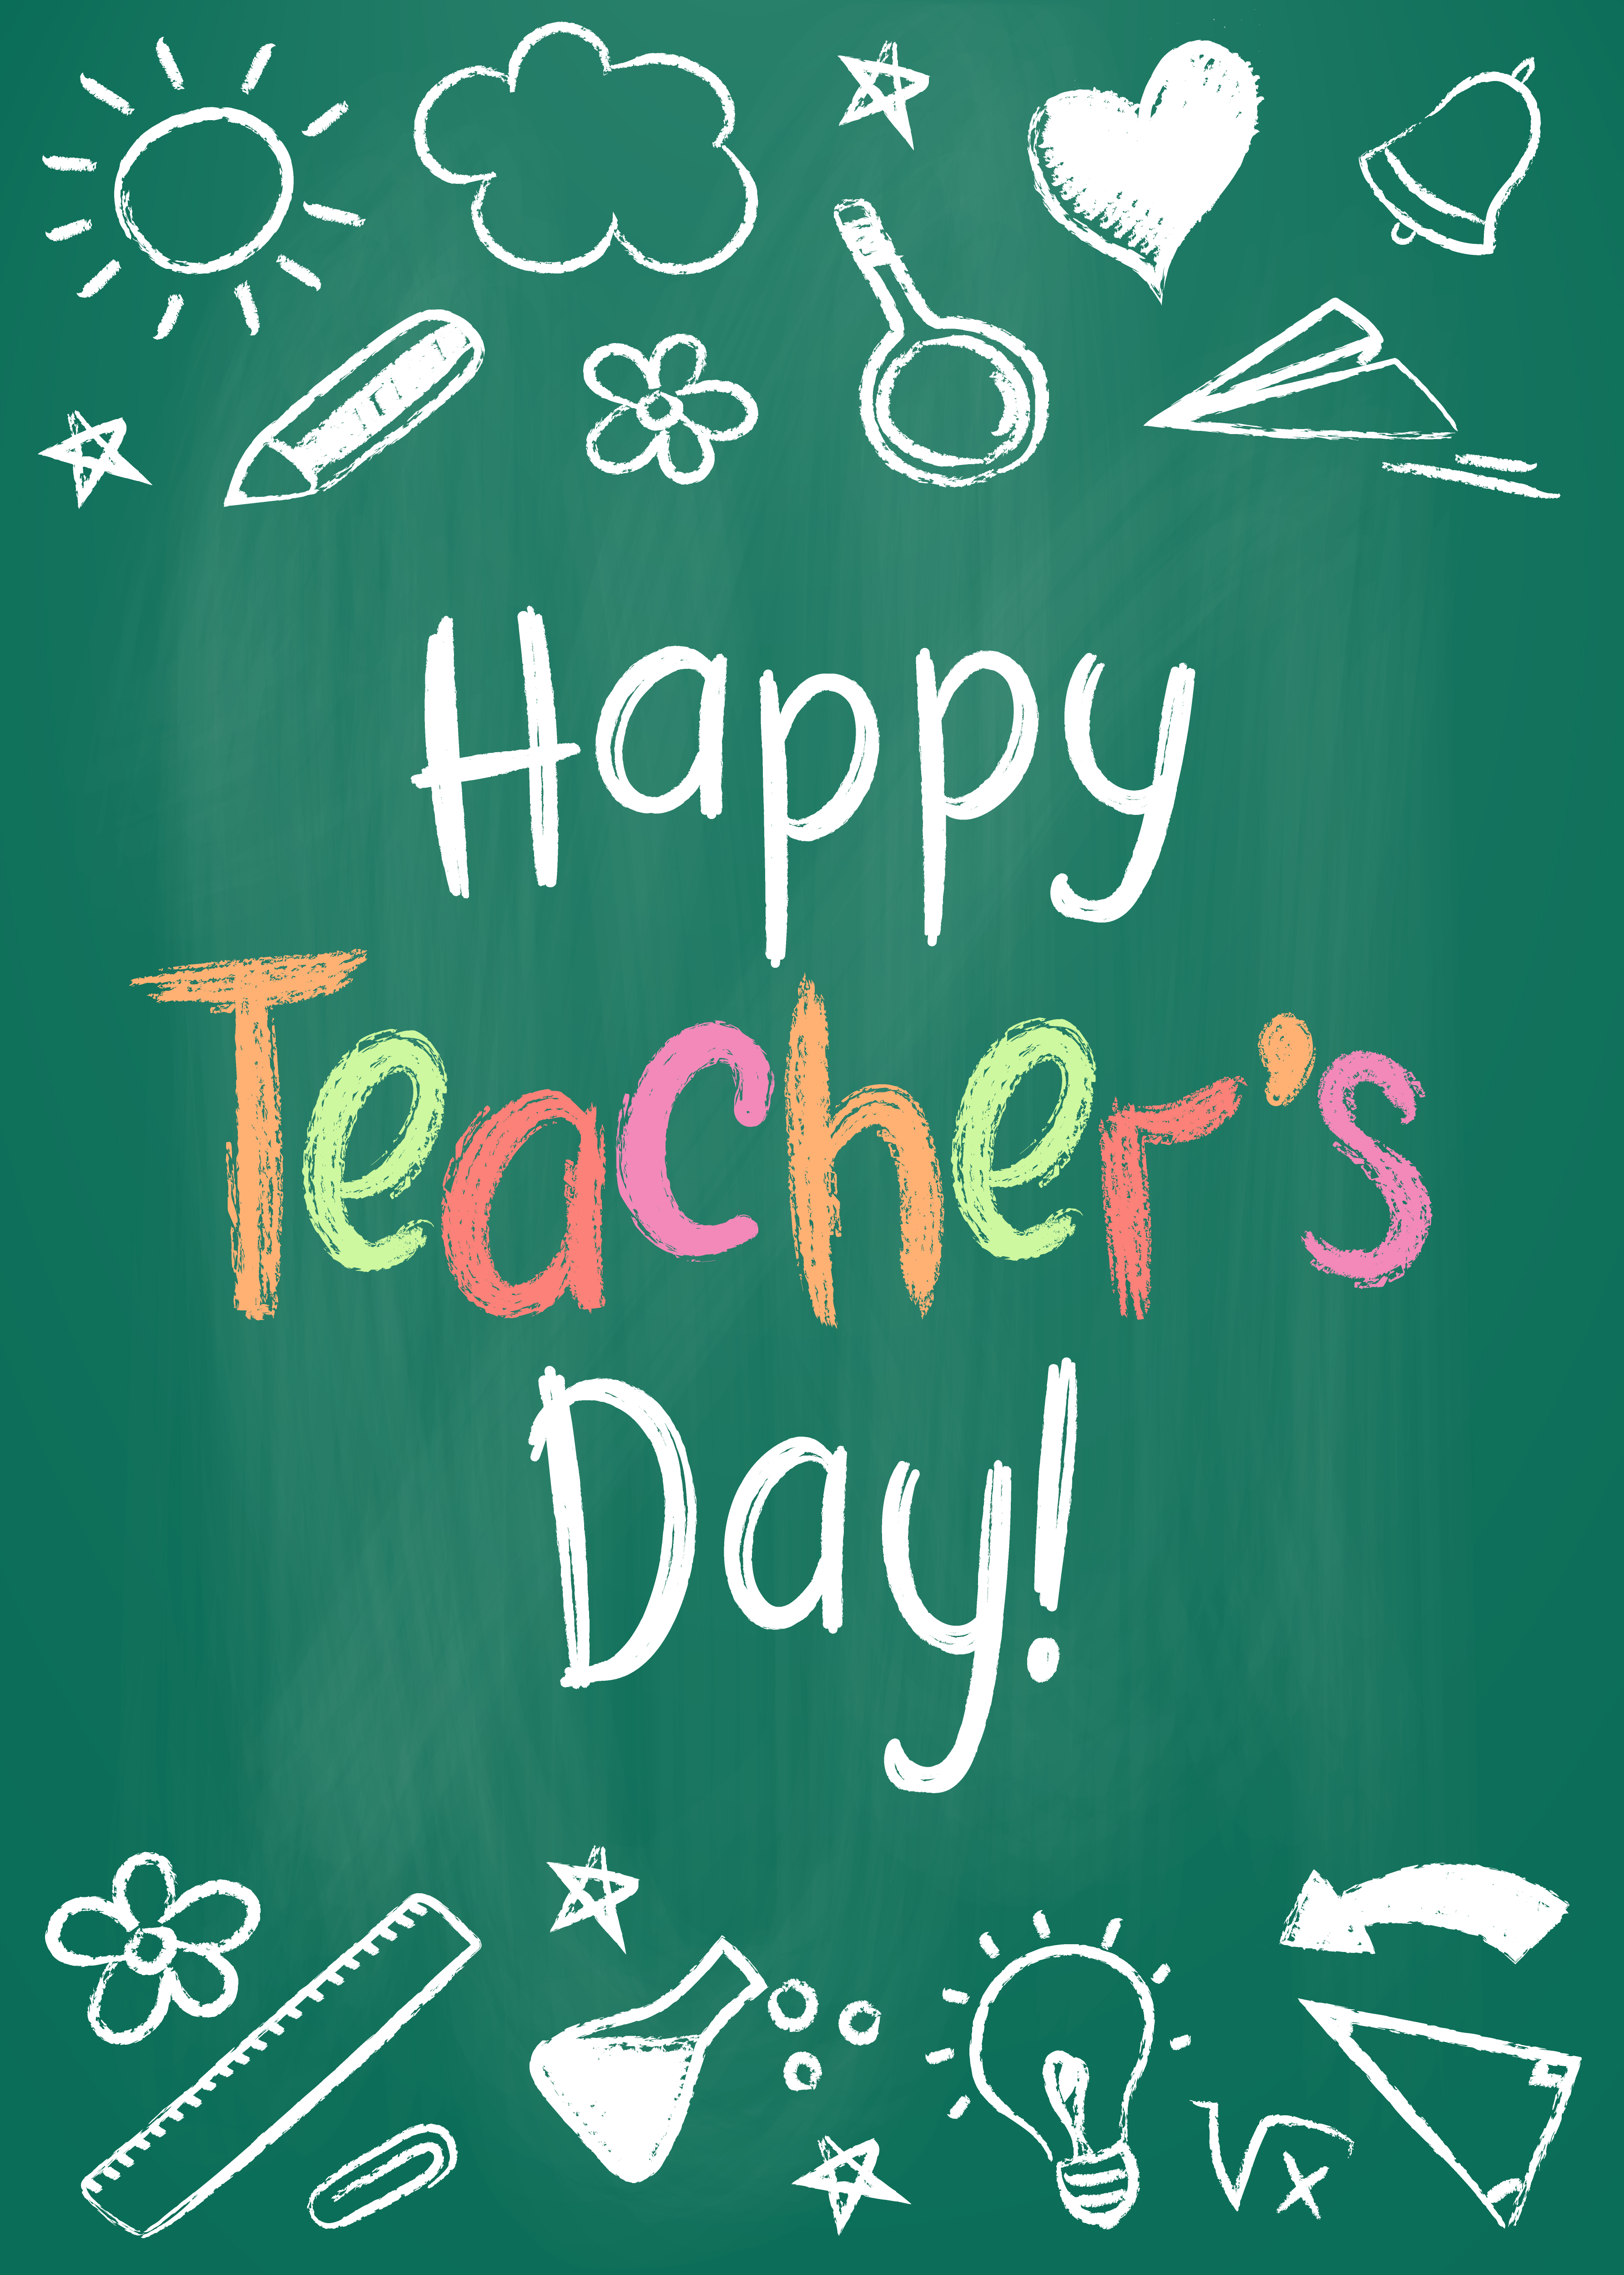 Happy Teachers Day greeting card or placard on green chalk board